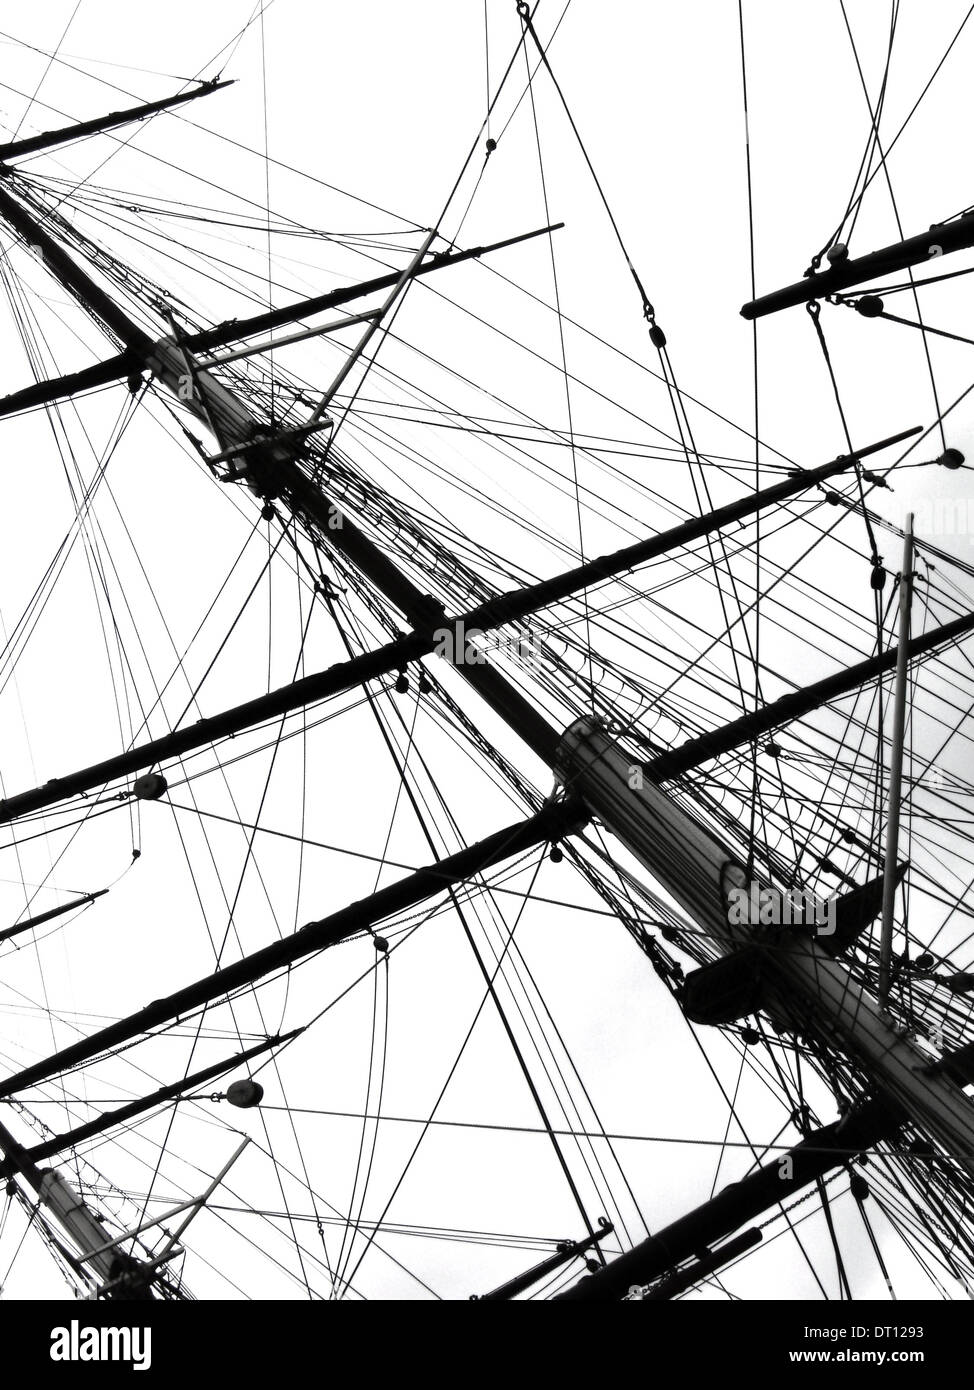 Flagpoles of the Cutty Sark famous tea clipper, Greenwich London UK - Stock Image